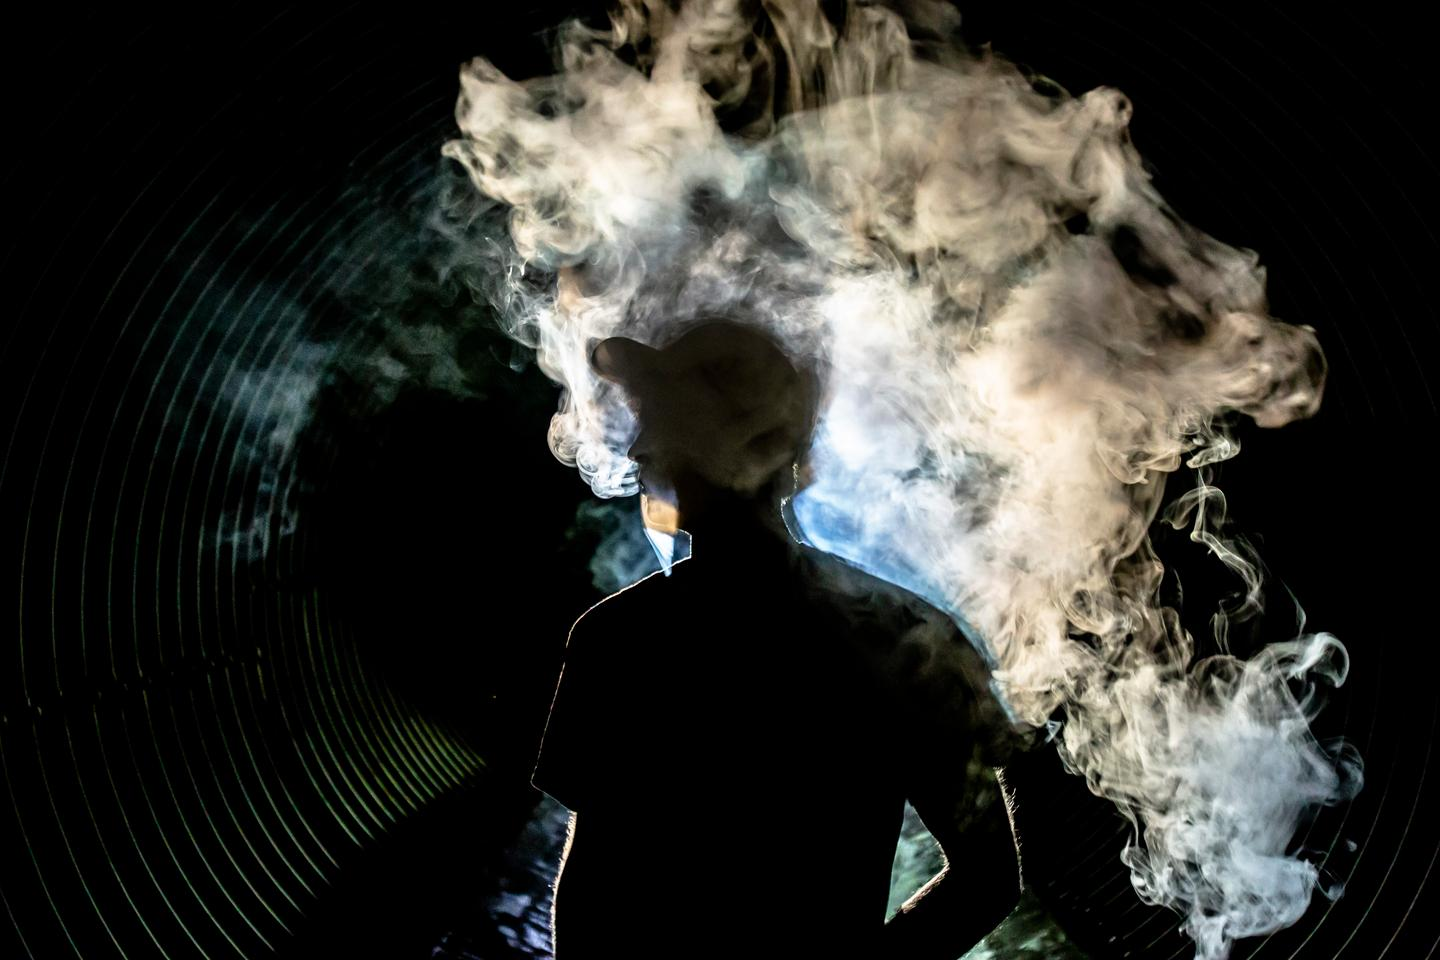 Man with smoke lifting from body in a dark tunnel